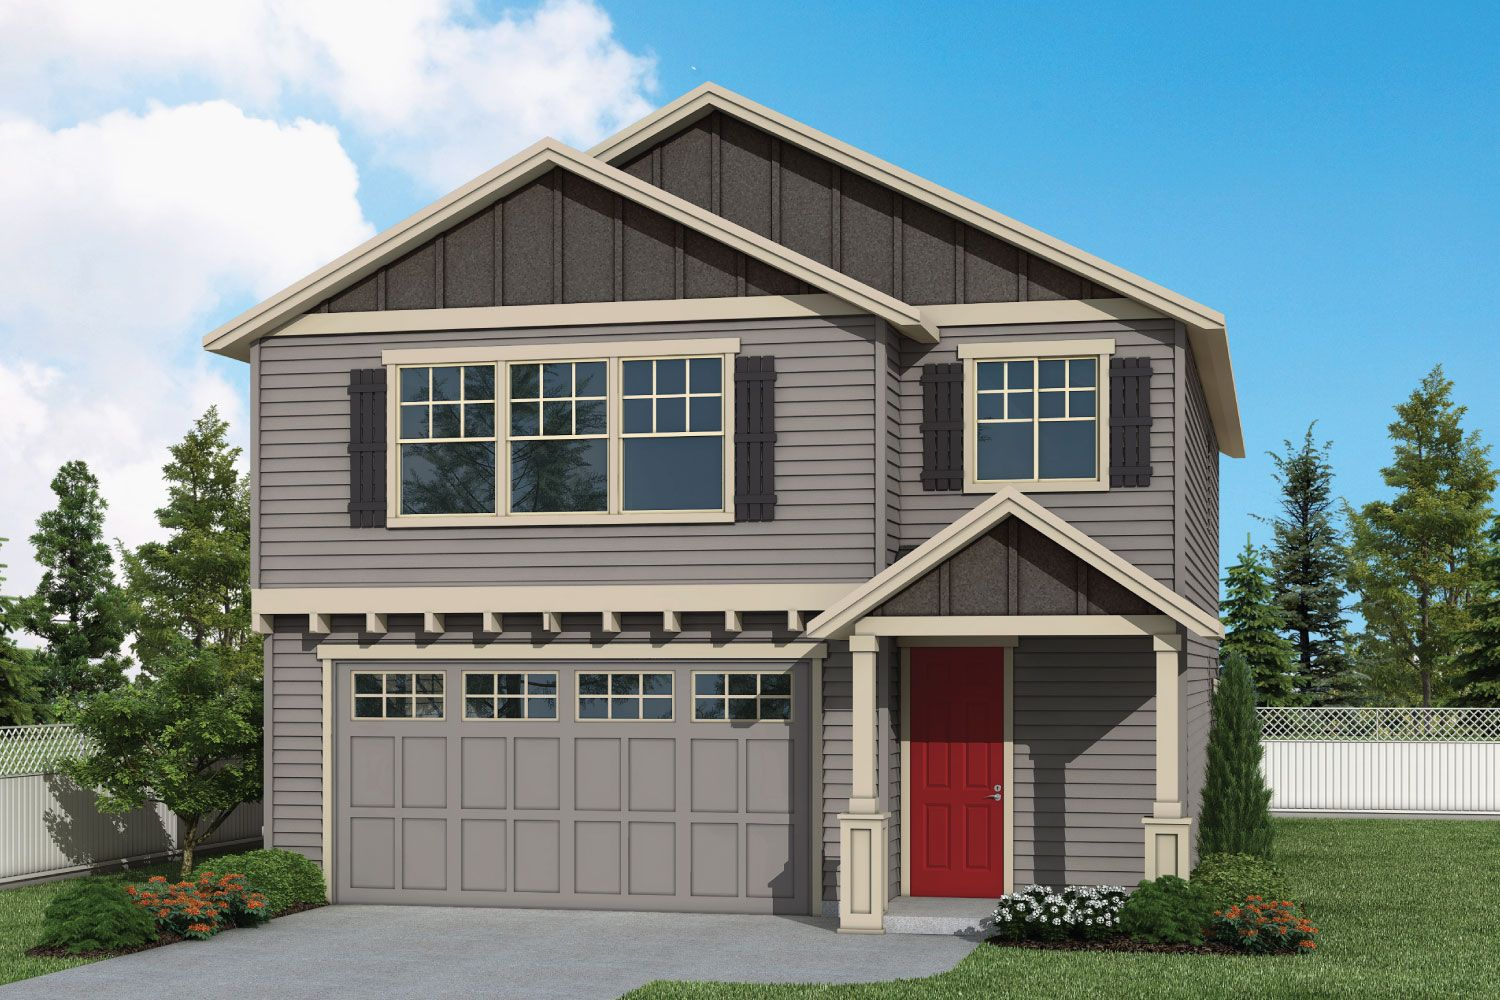 Plan 2196 Elevation 1 Rendering by Aho Construction:Plan 2196 Elevation 1